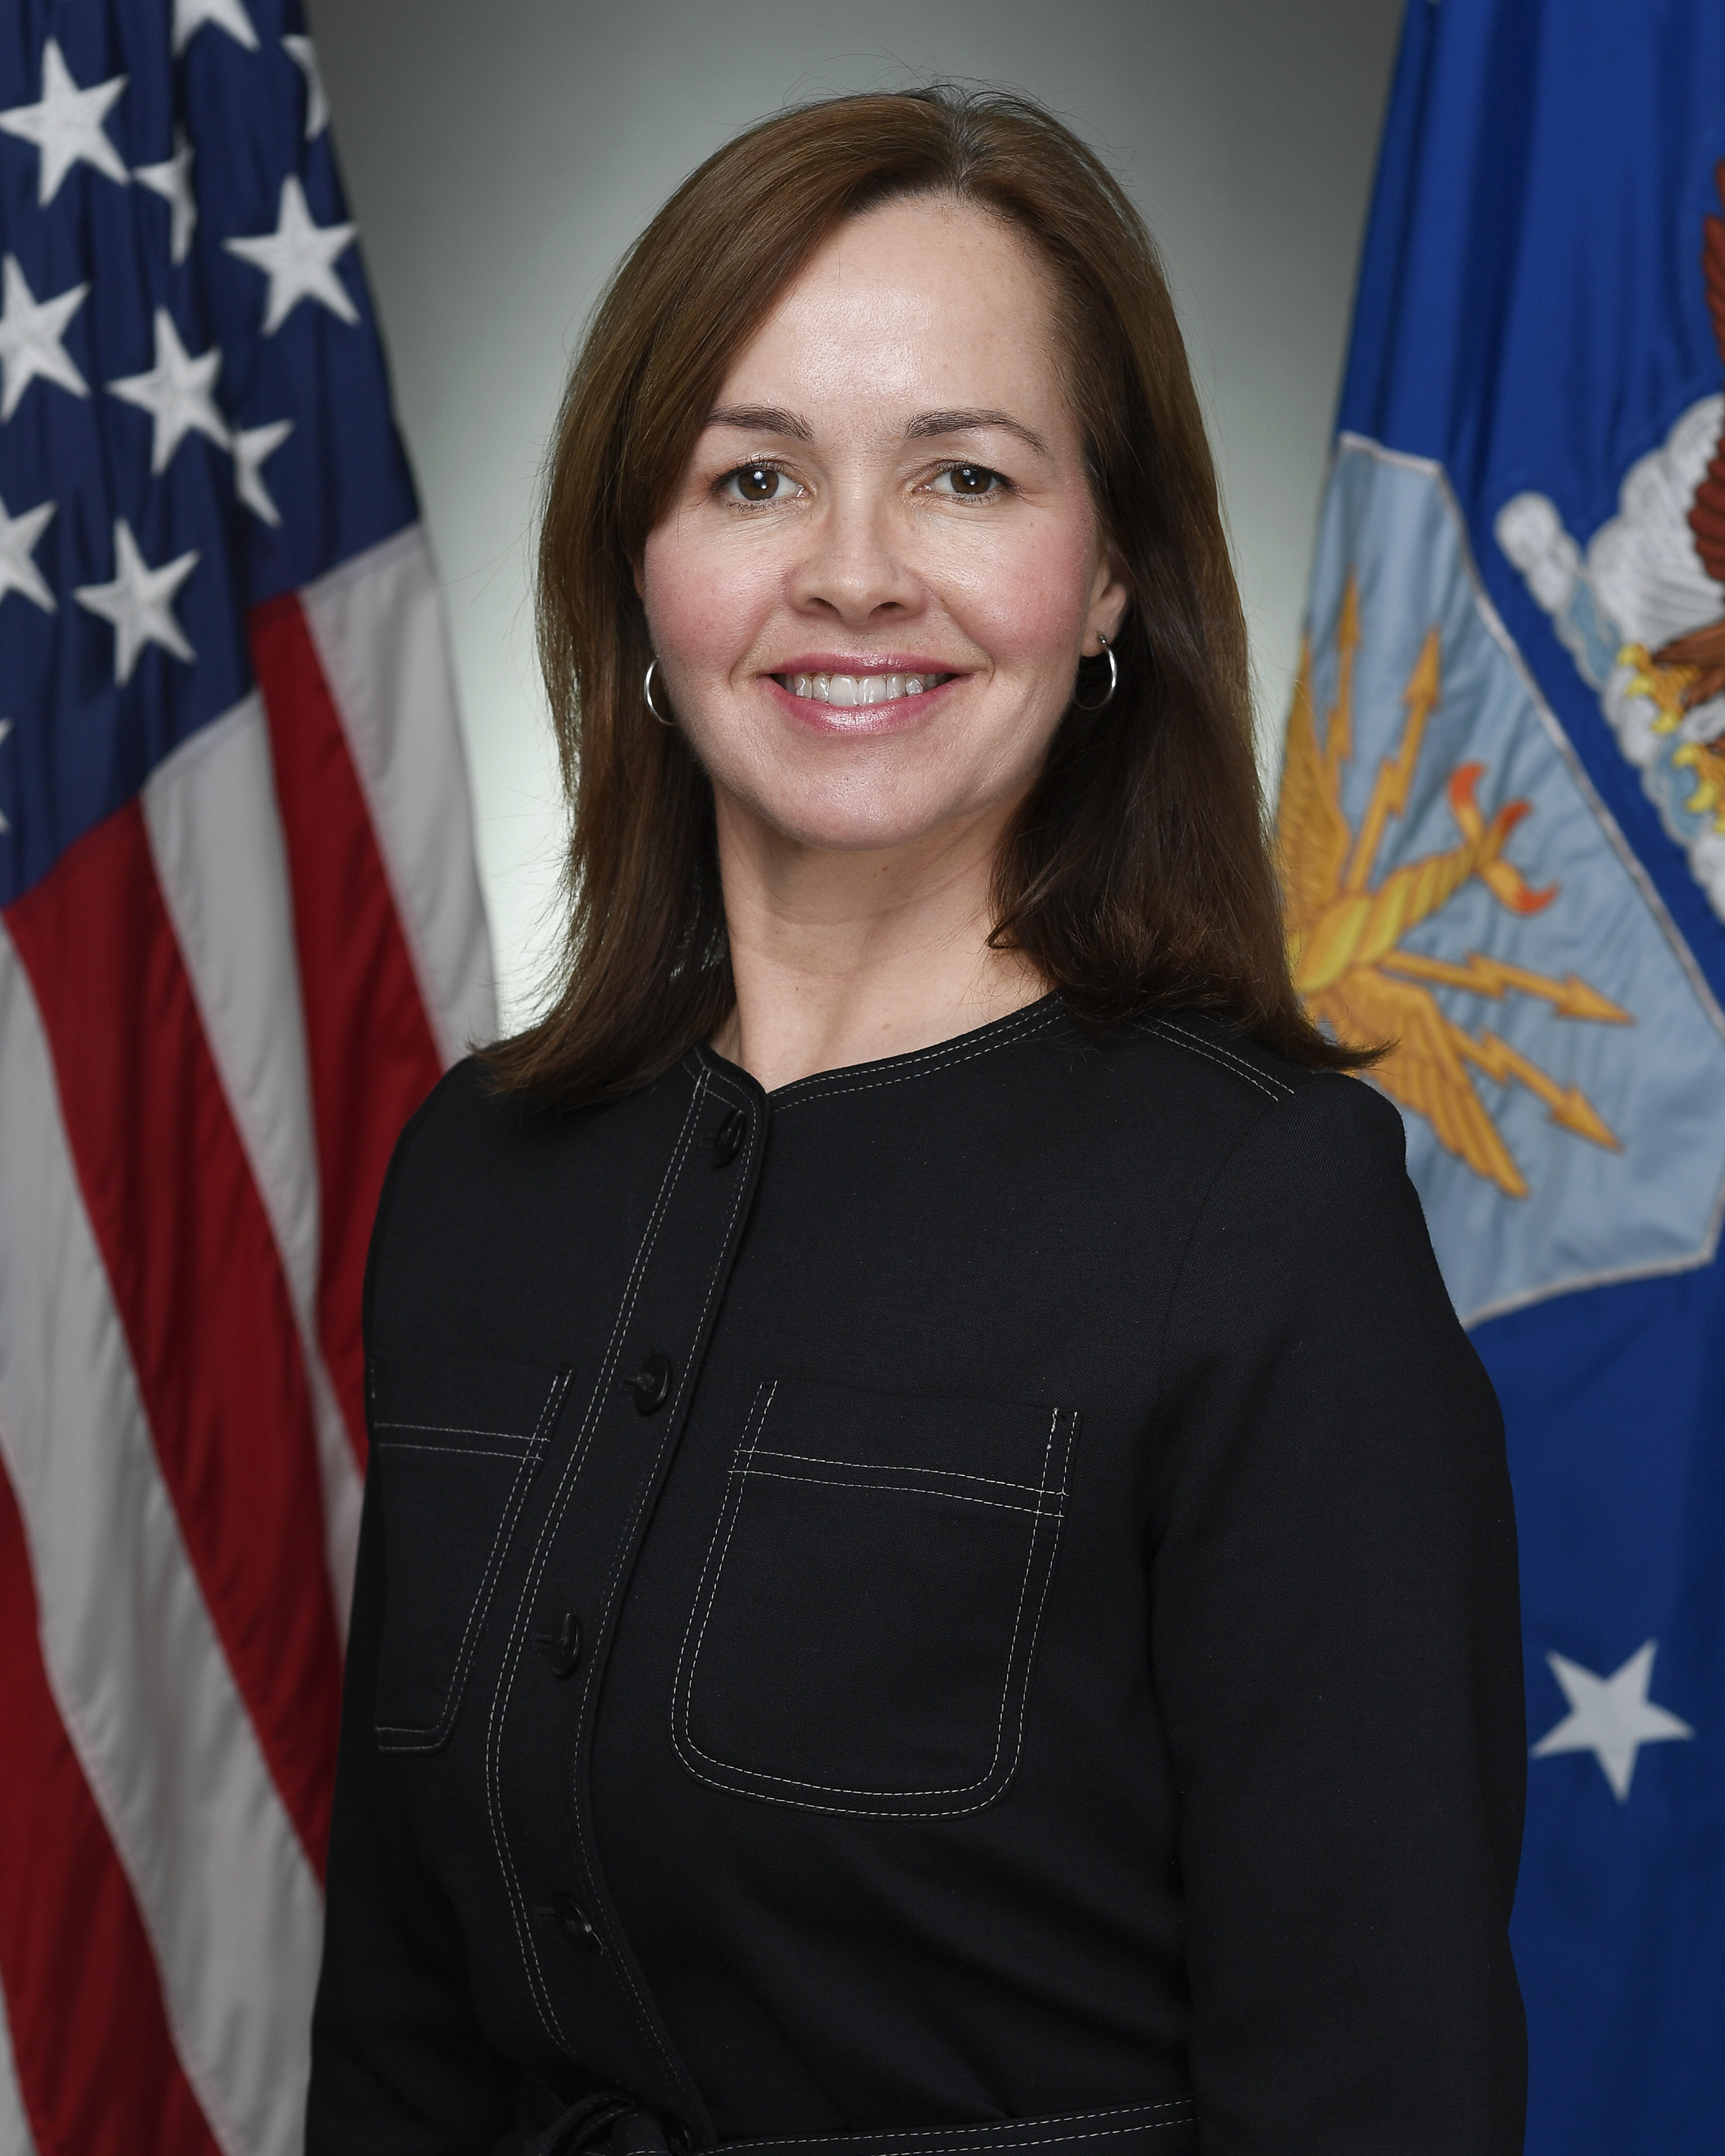 Official photo of Kelli L. Seybolt, SAF-IA